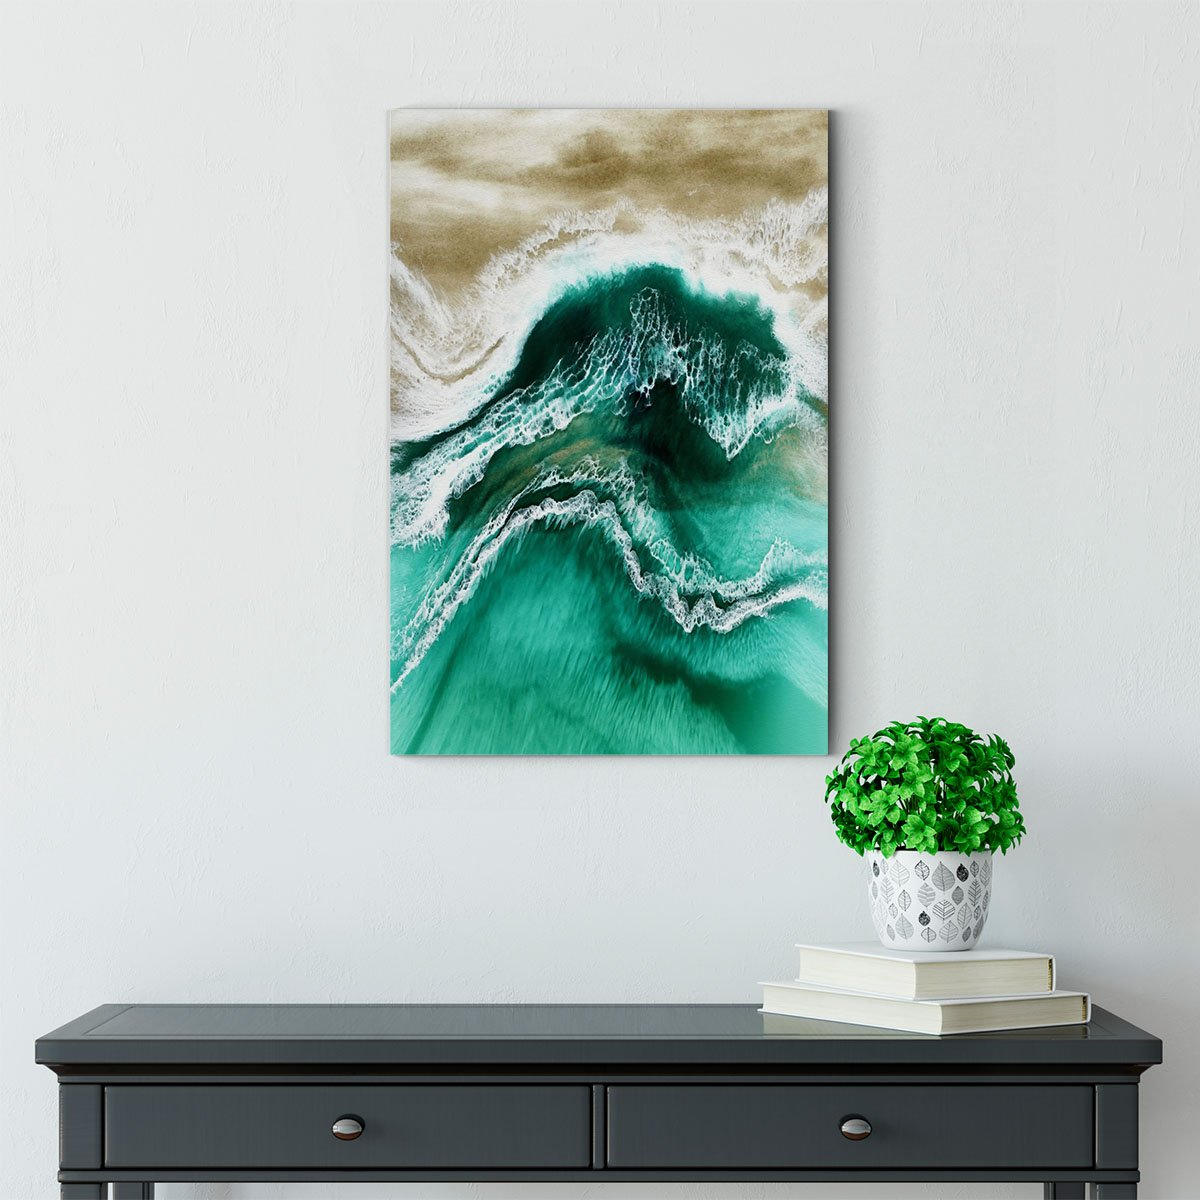 Blue ocean abstract decorative painting 0013